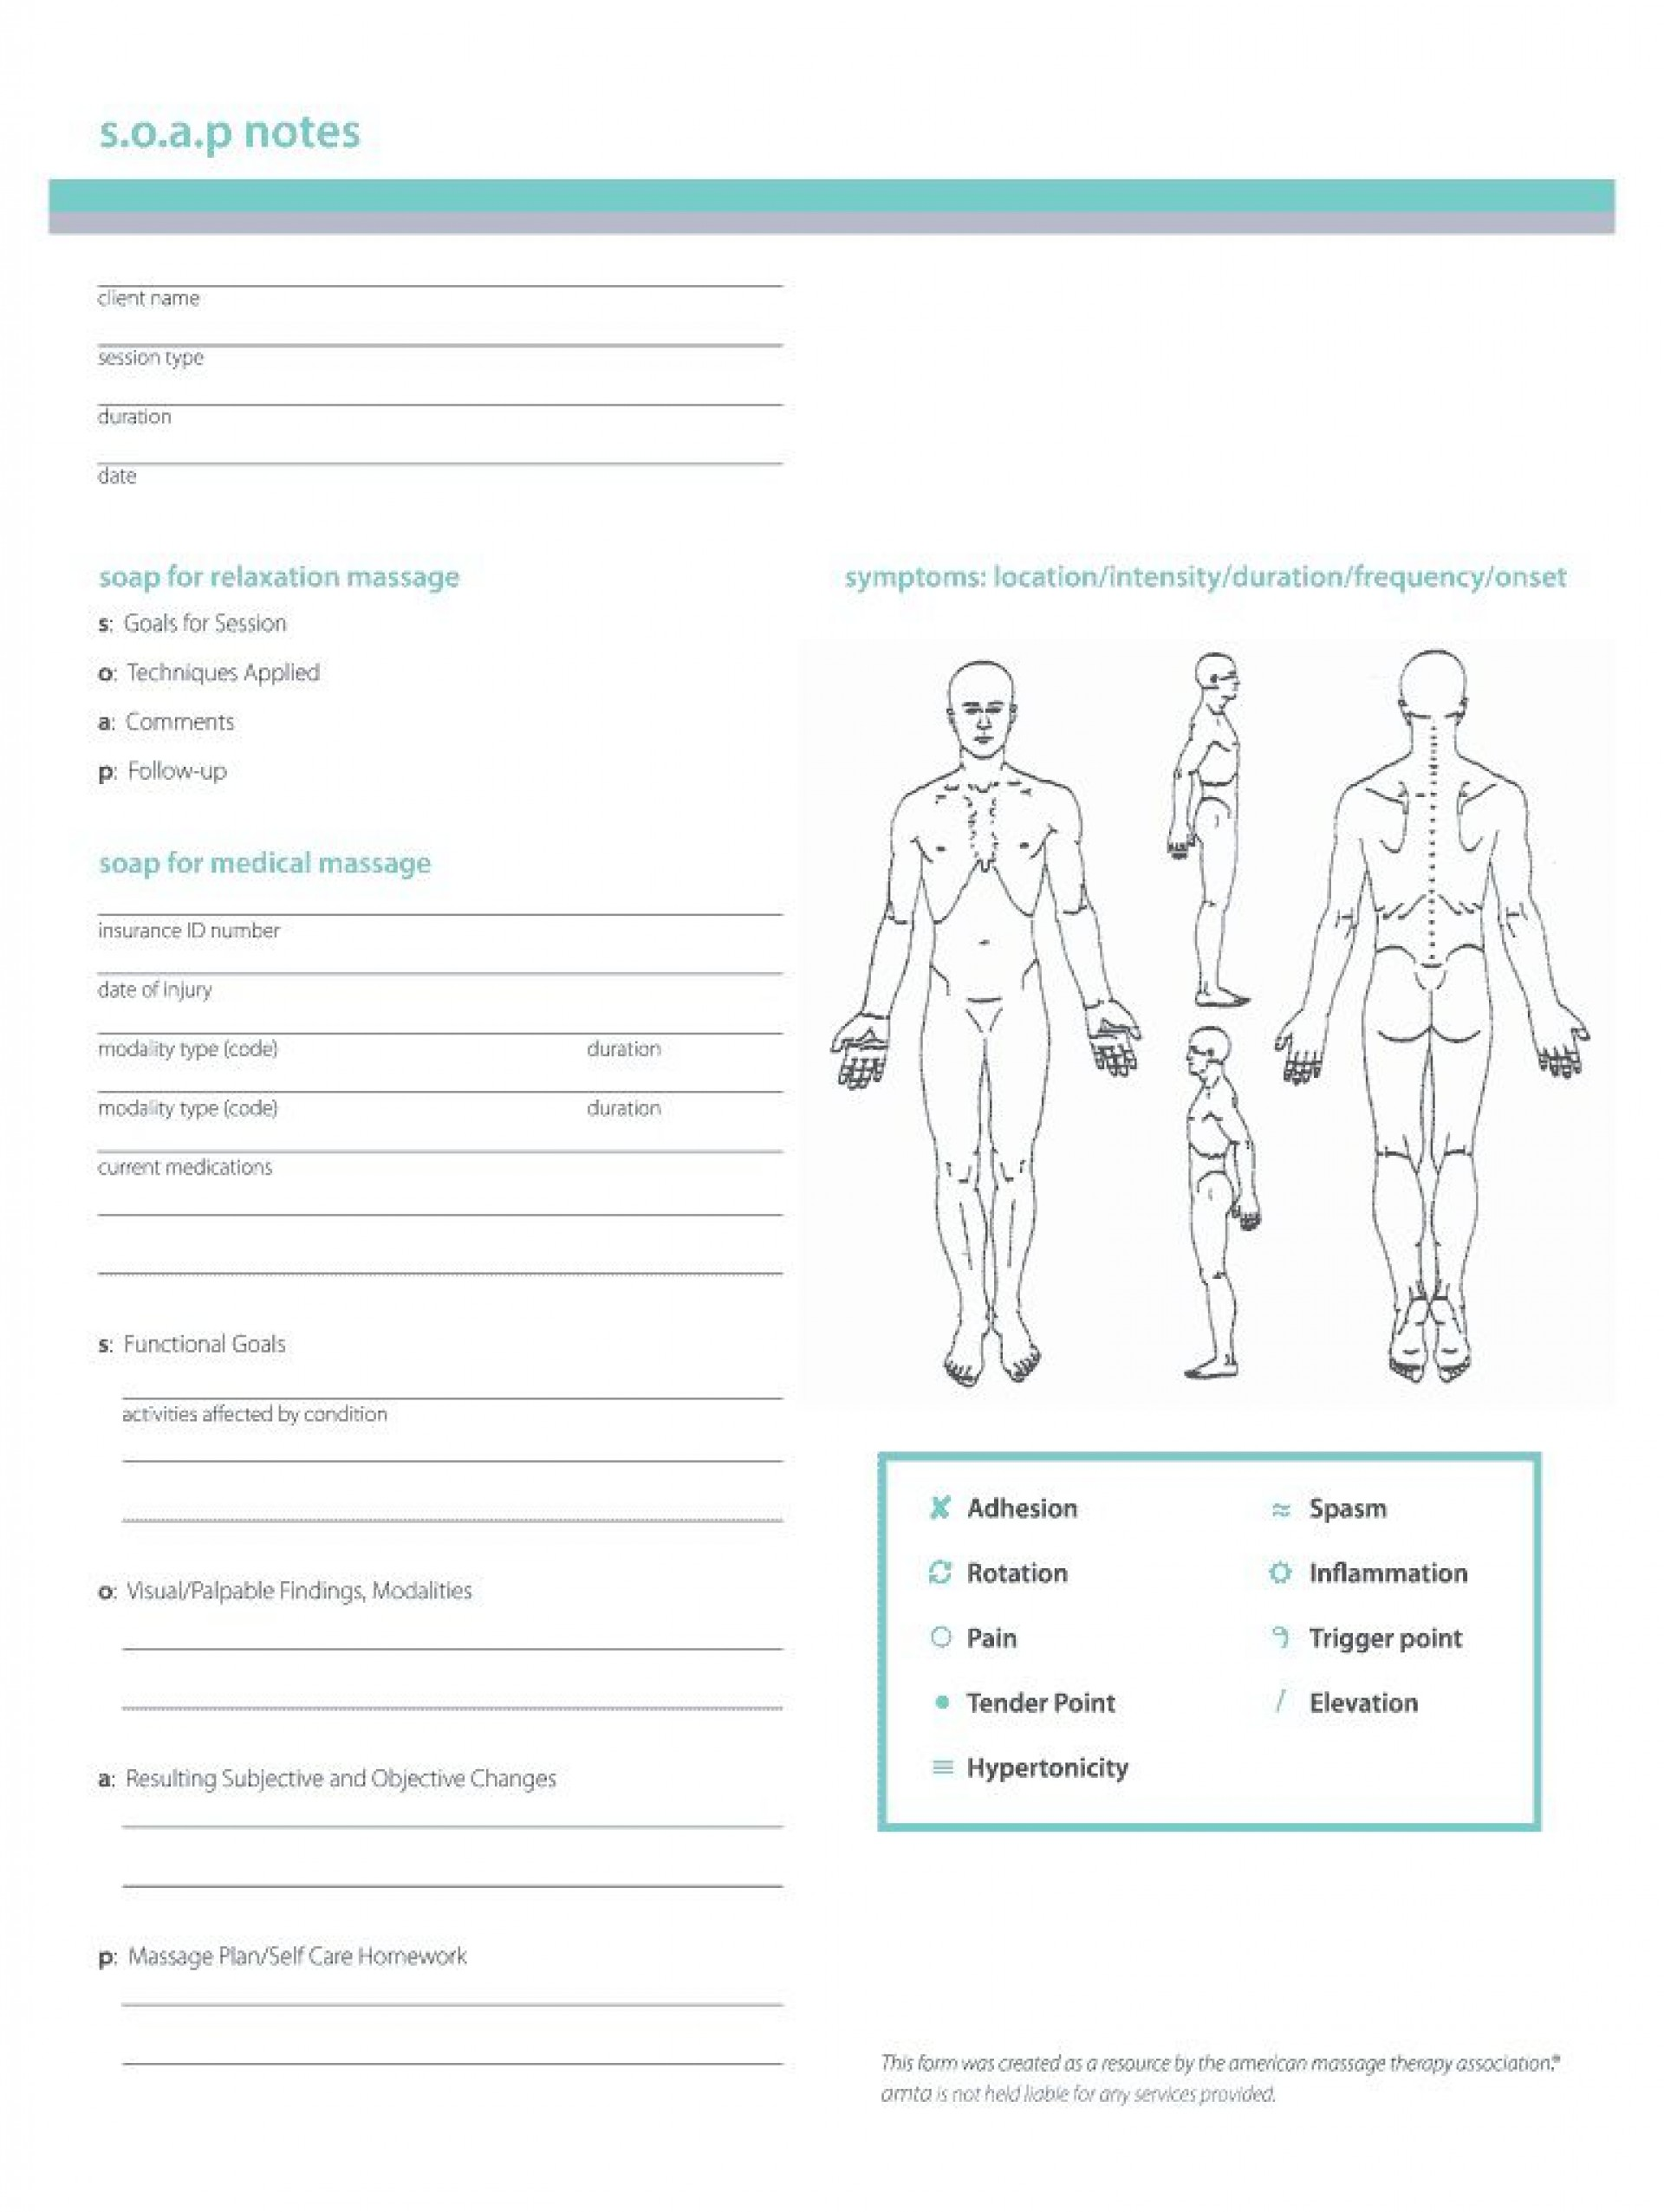 002 Rare Soap Note Template Pdf High Resolution  Massage Free Chiropractic1920